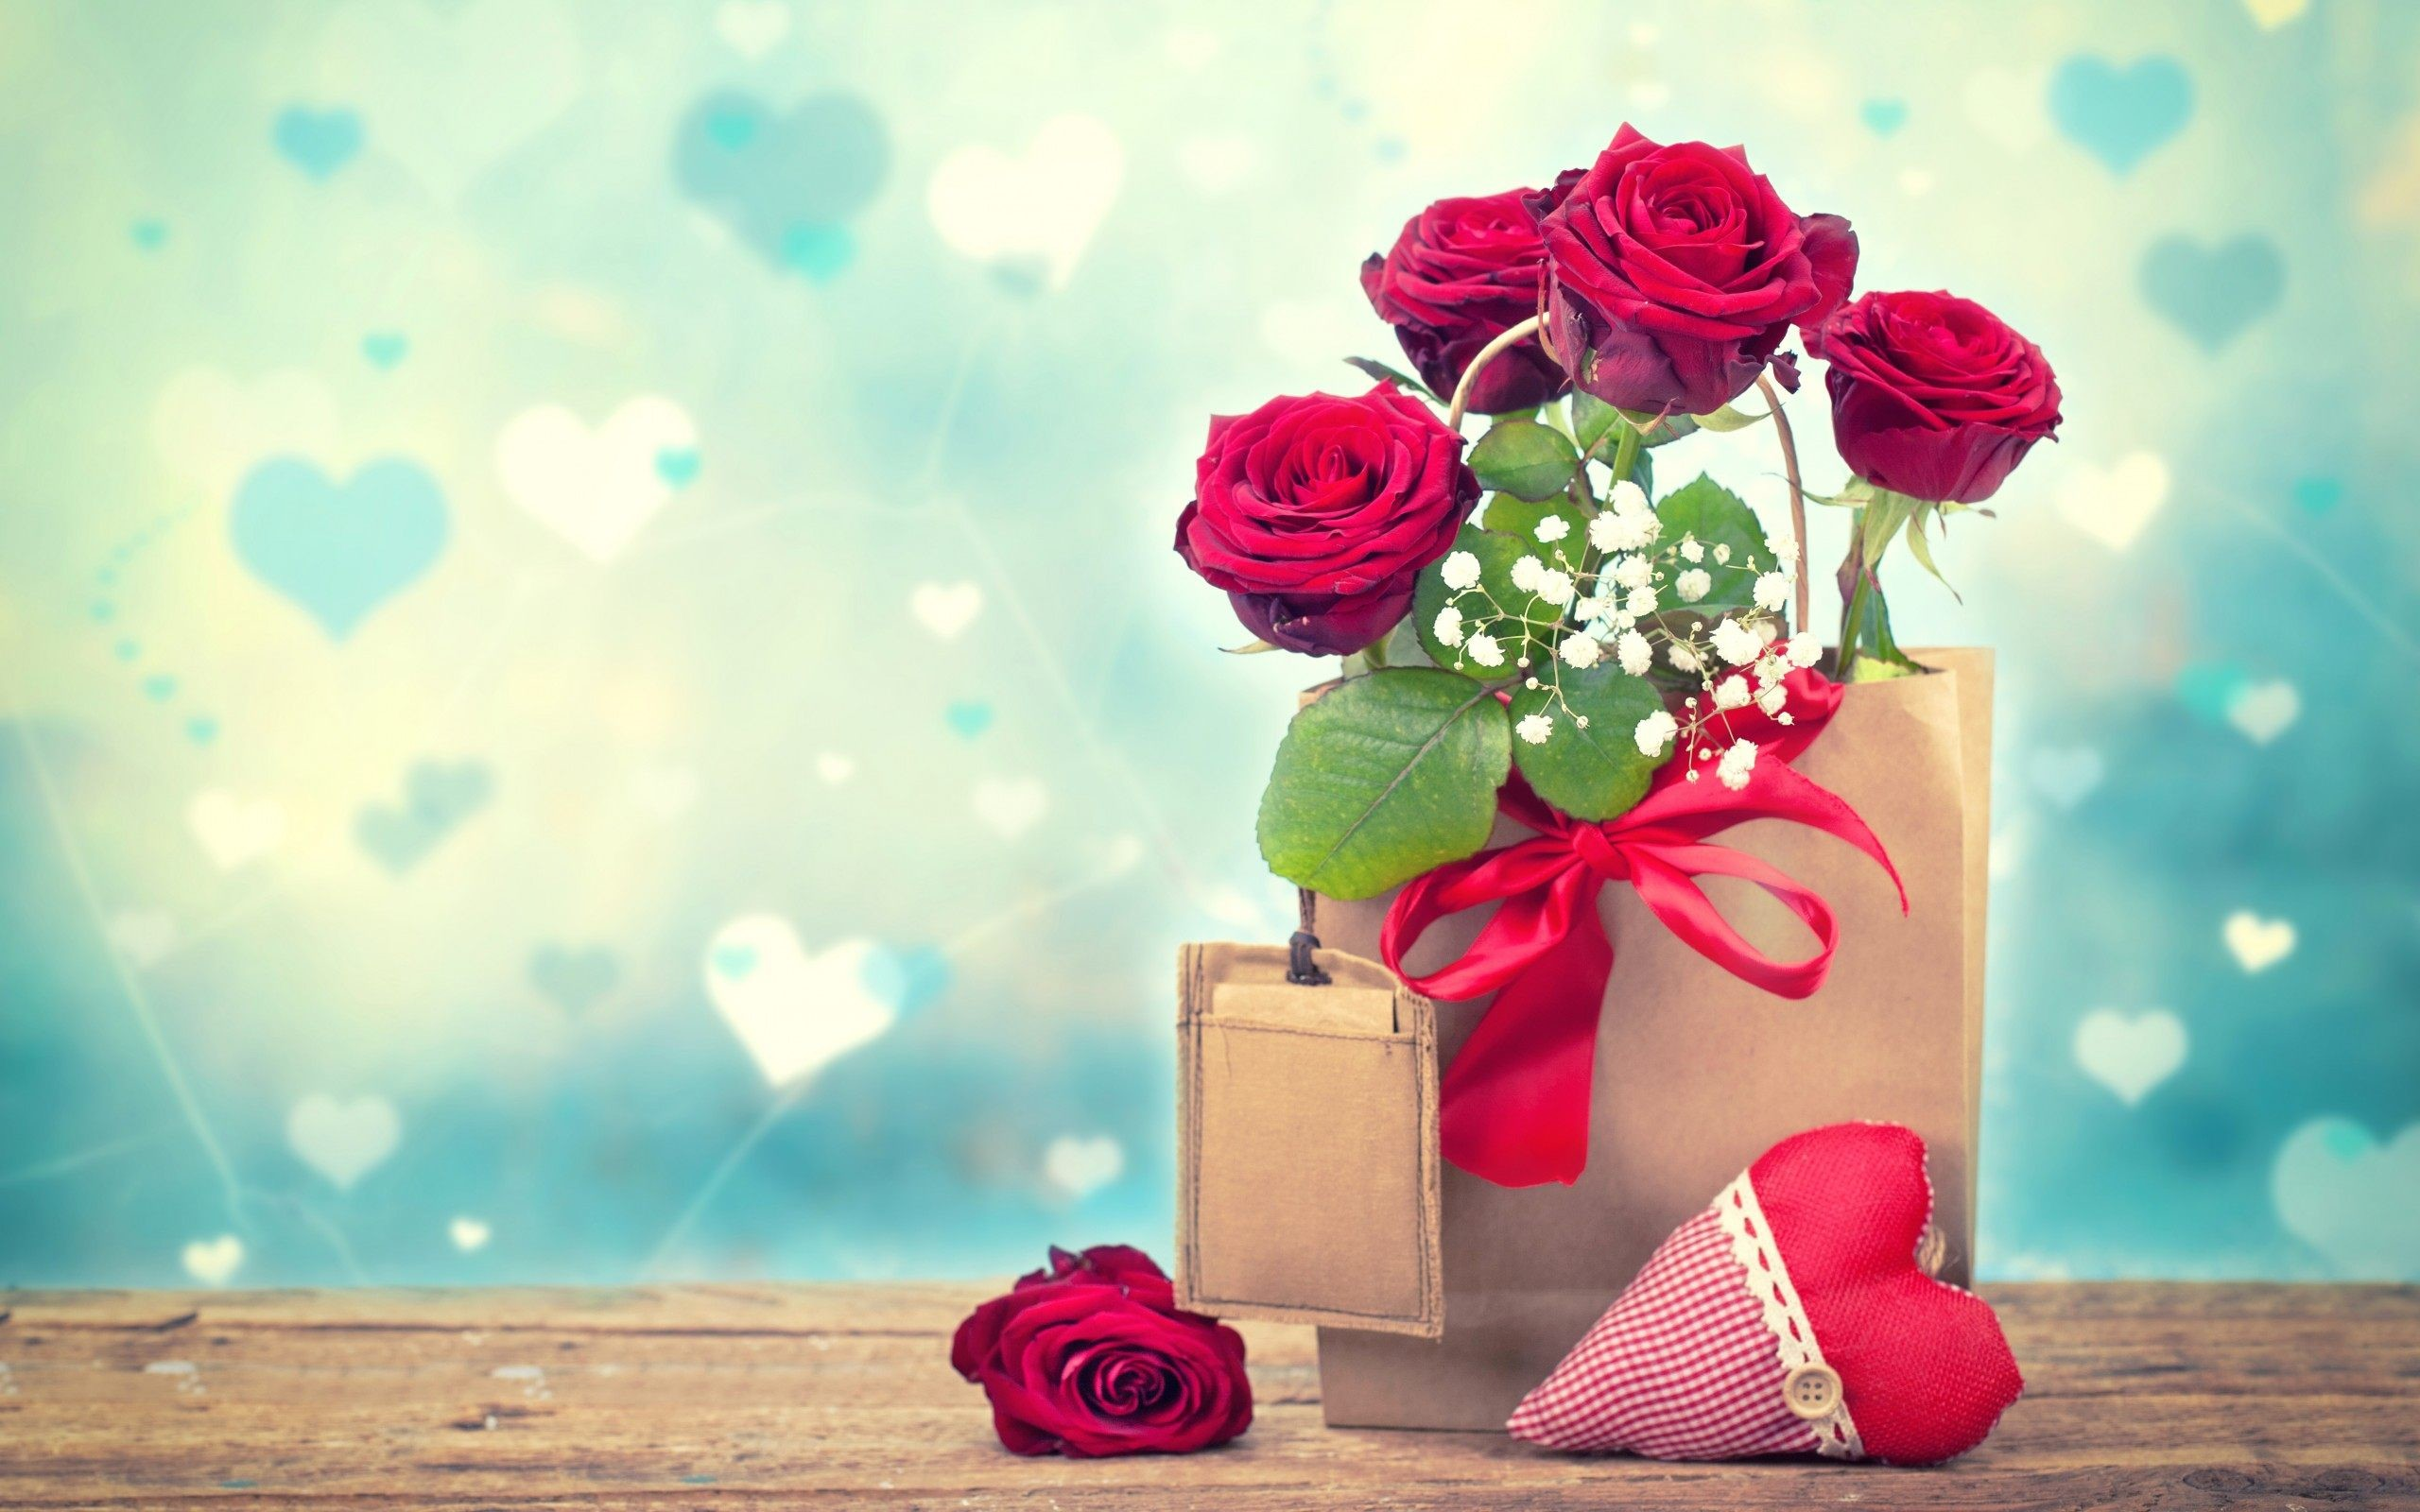 Free Cute Love Wallpapers: Cute Love Wallpapers For Desktop (66+ Images